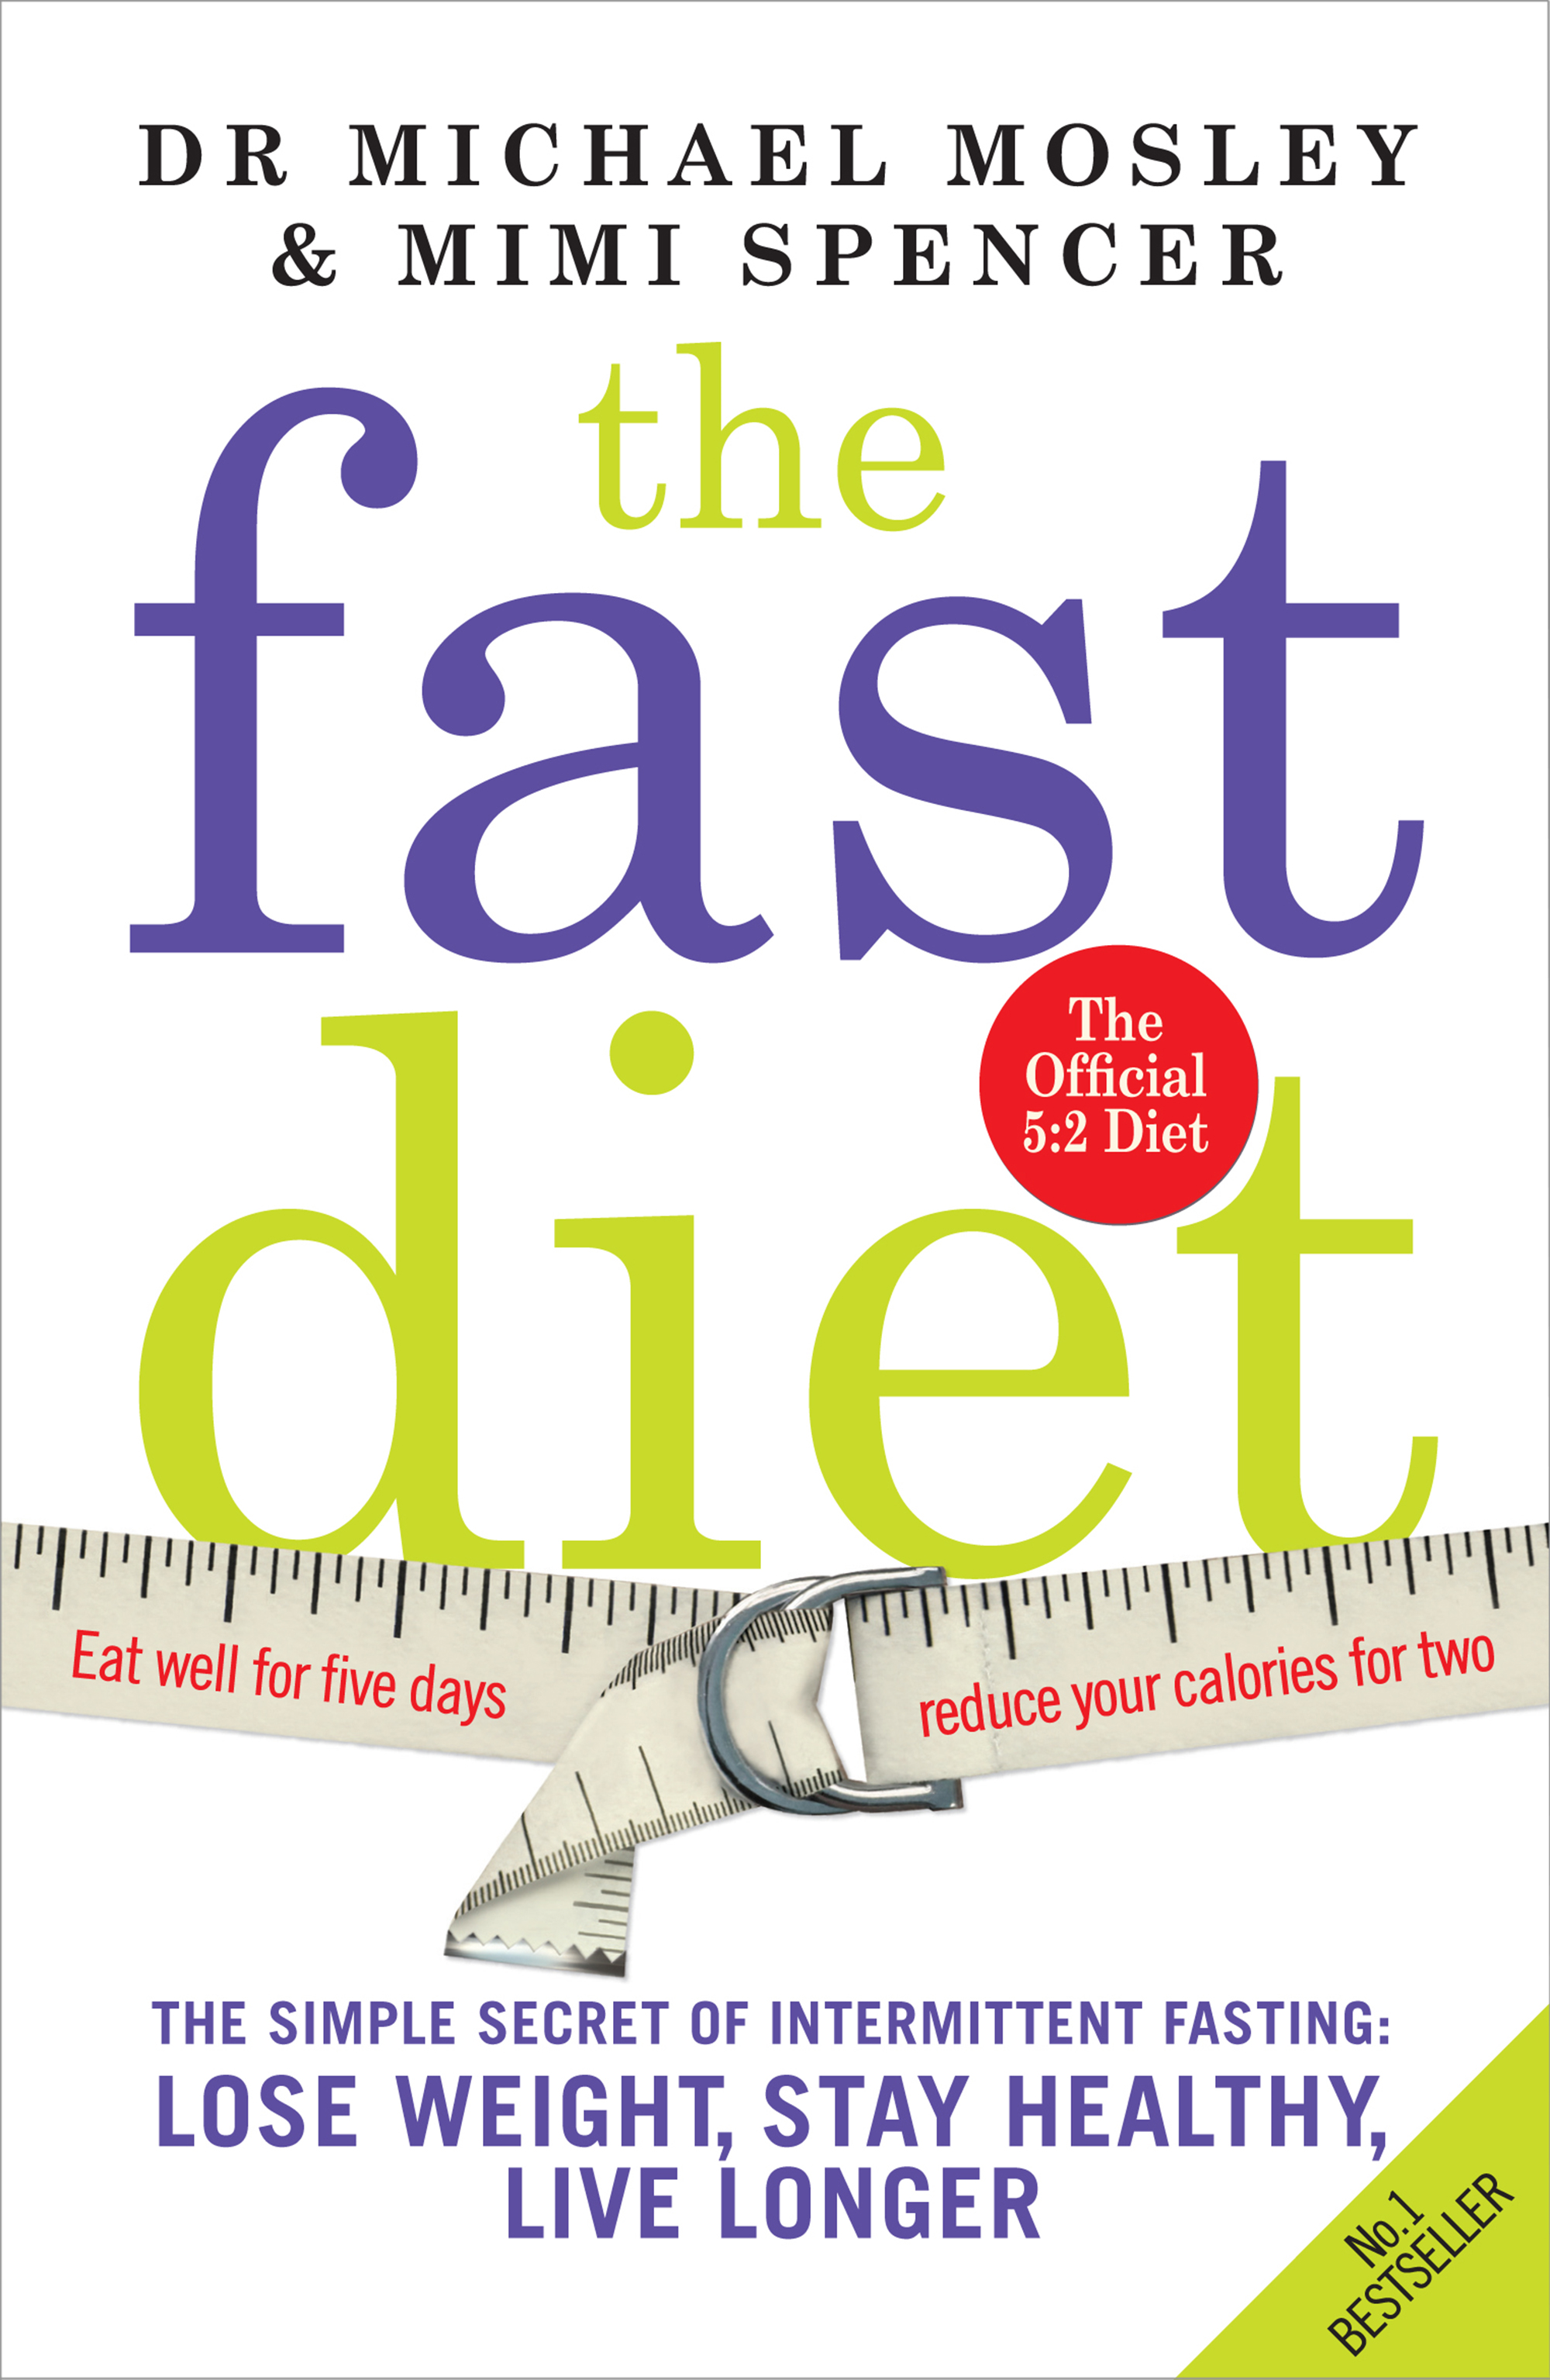 The Fast Diet The secret of intermittent fasting - lose weight, stay healthy, live longer